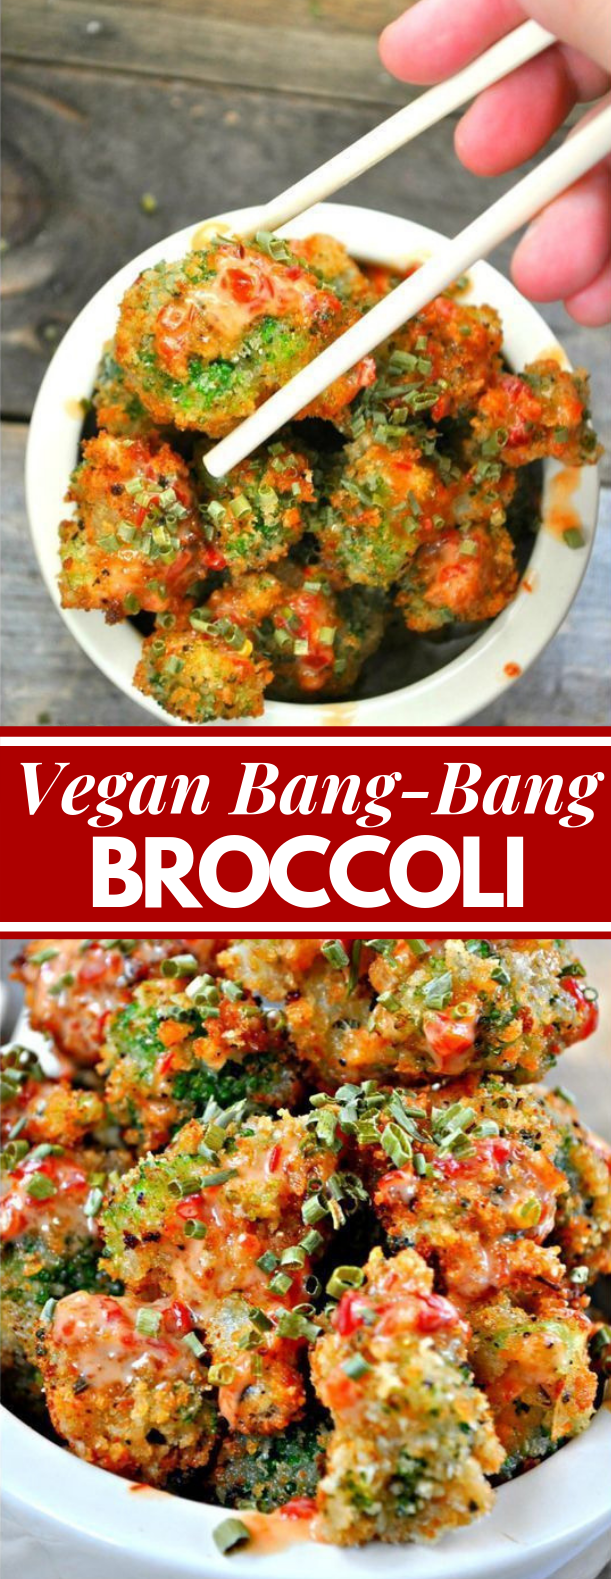 Vegan Bang Bang Broccoli #veganrecipe  #spicy